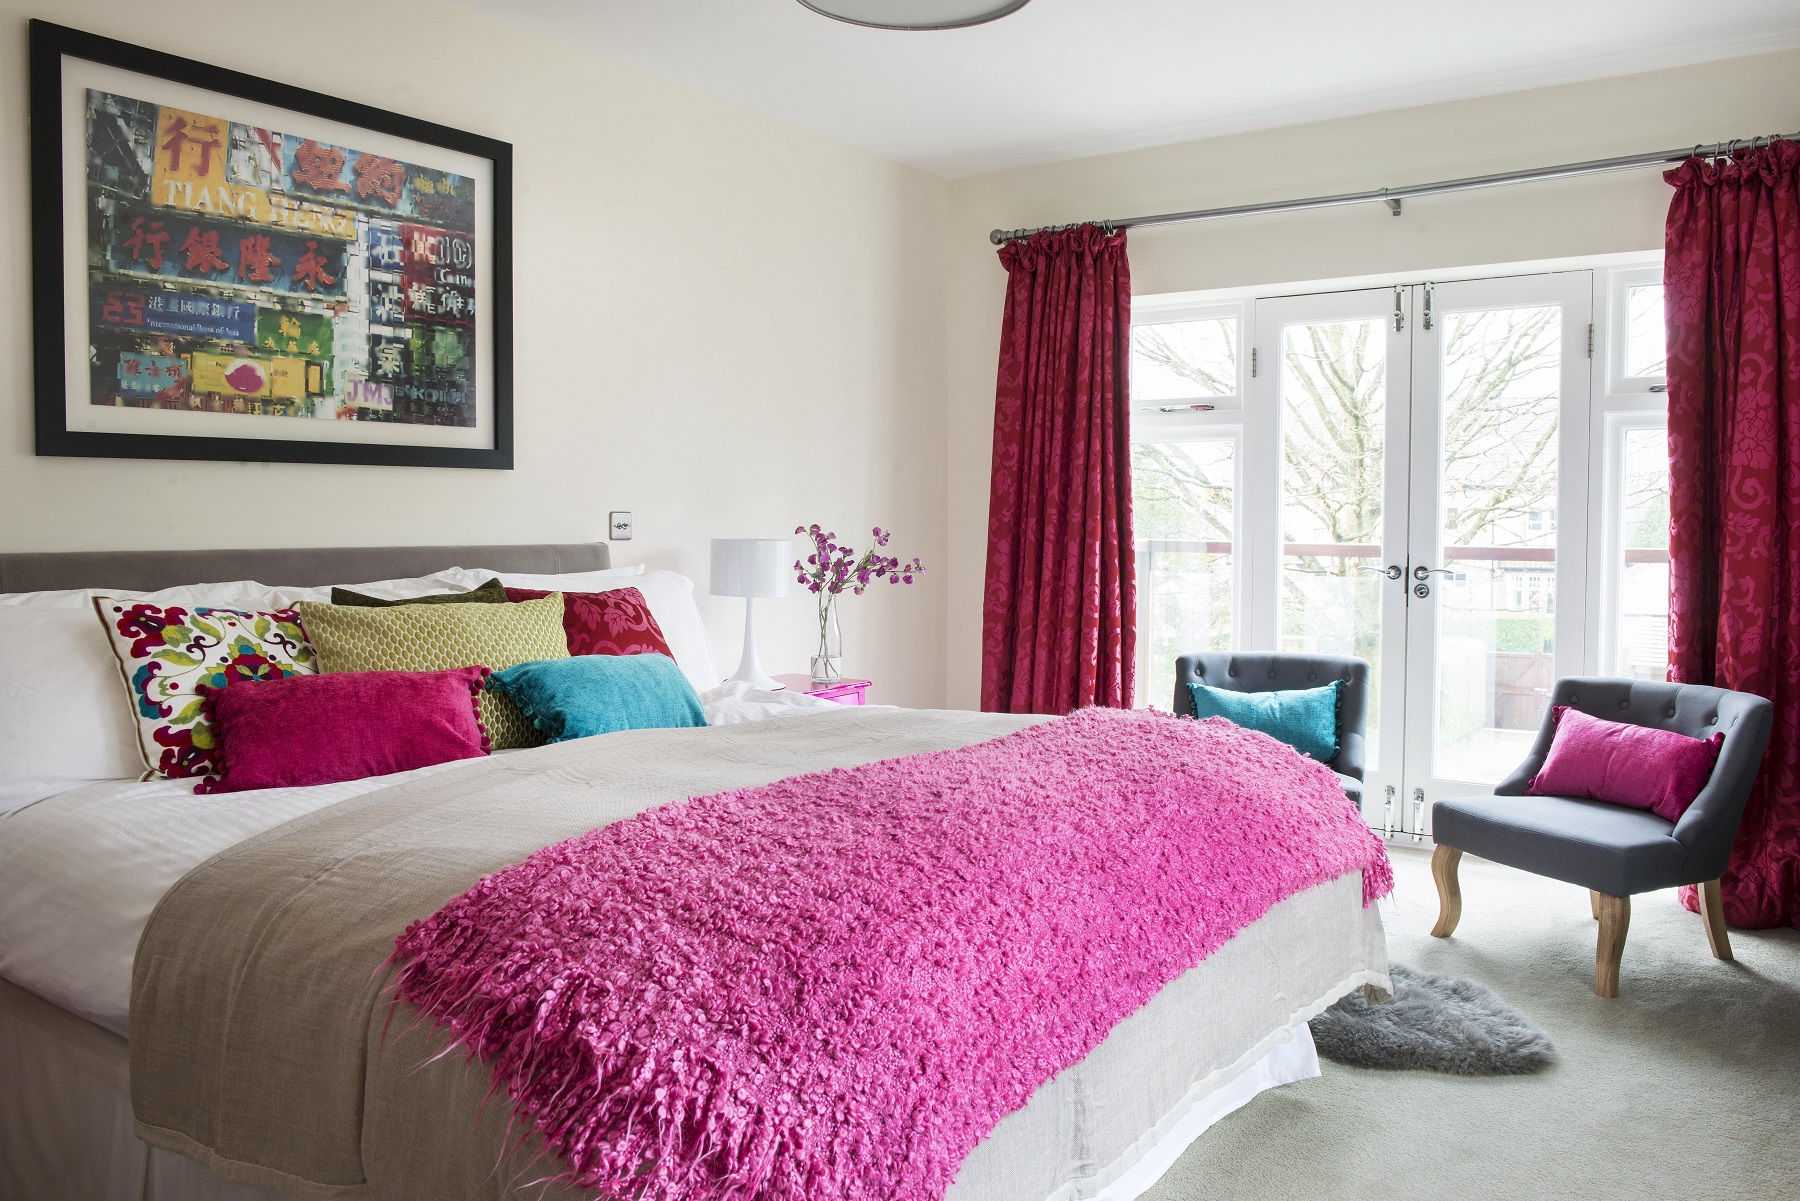 A master bedroom was brought to life with bright colours and original art